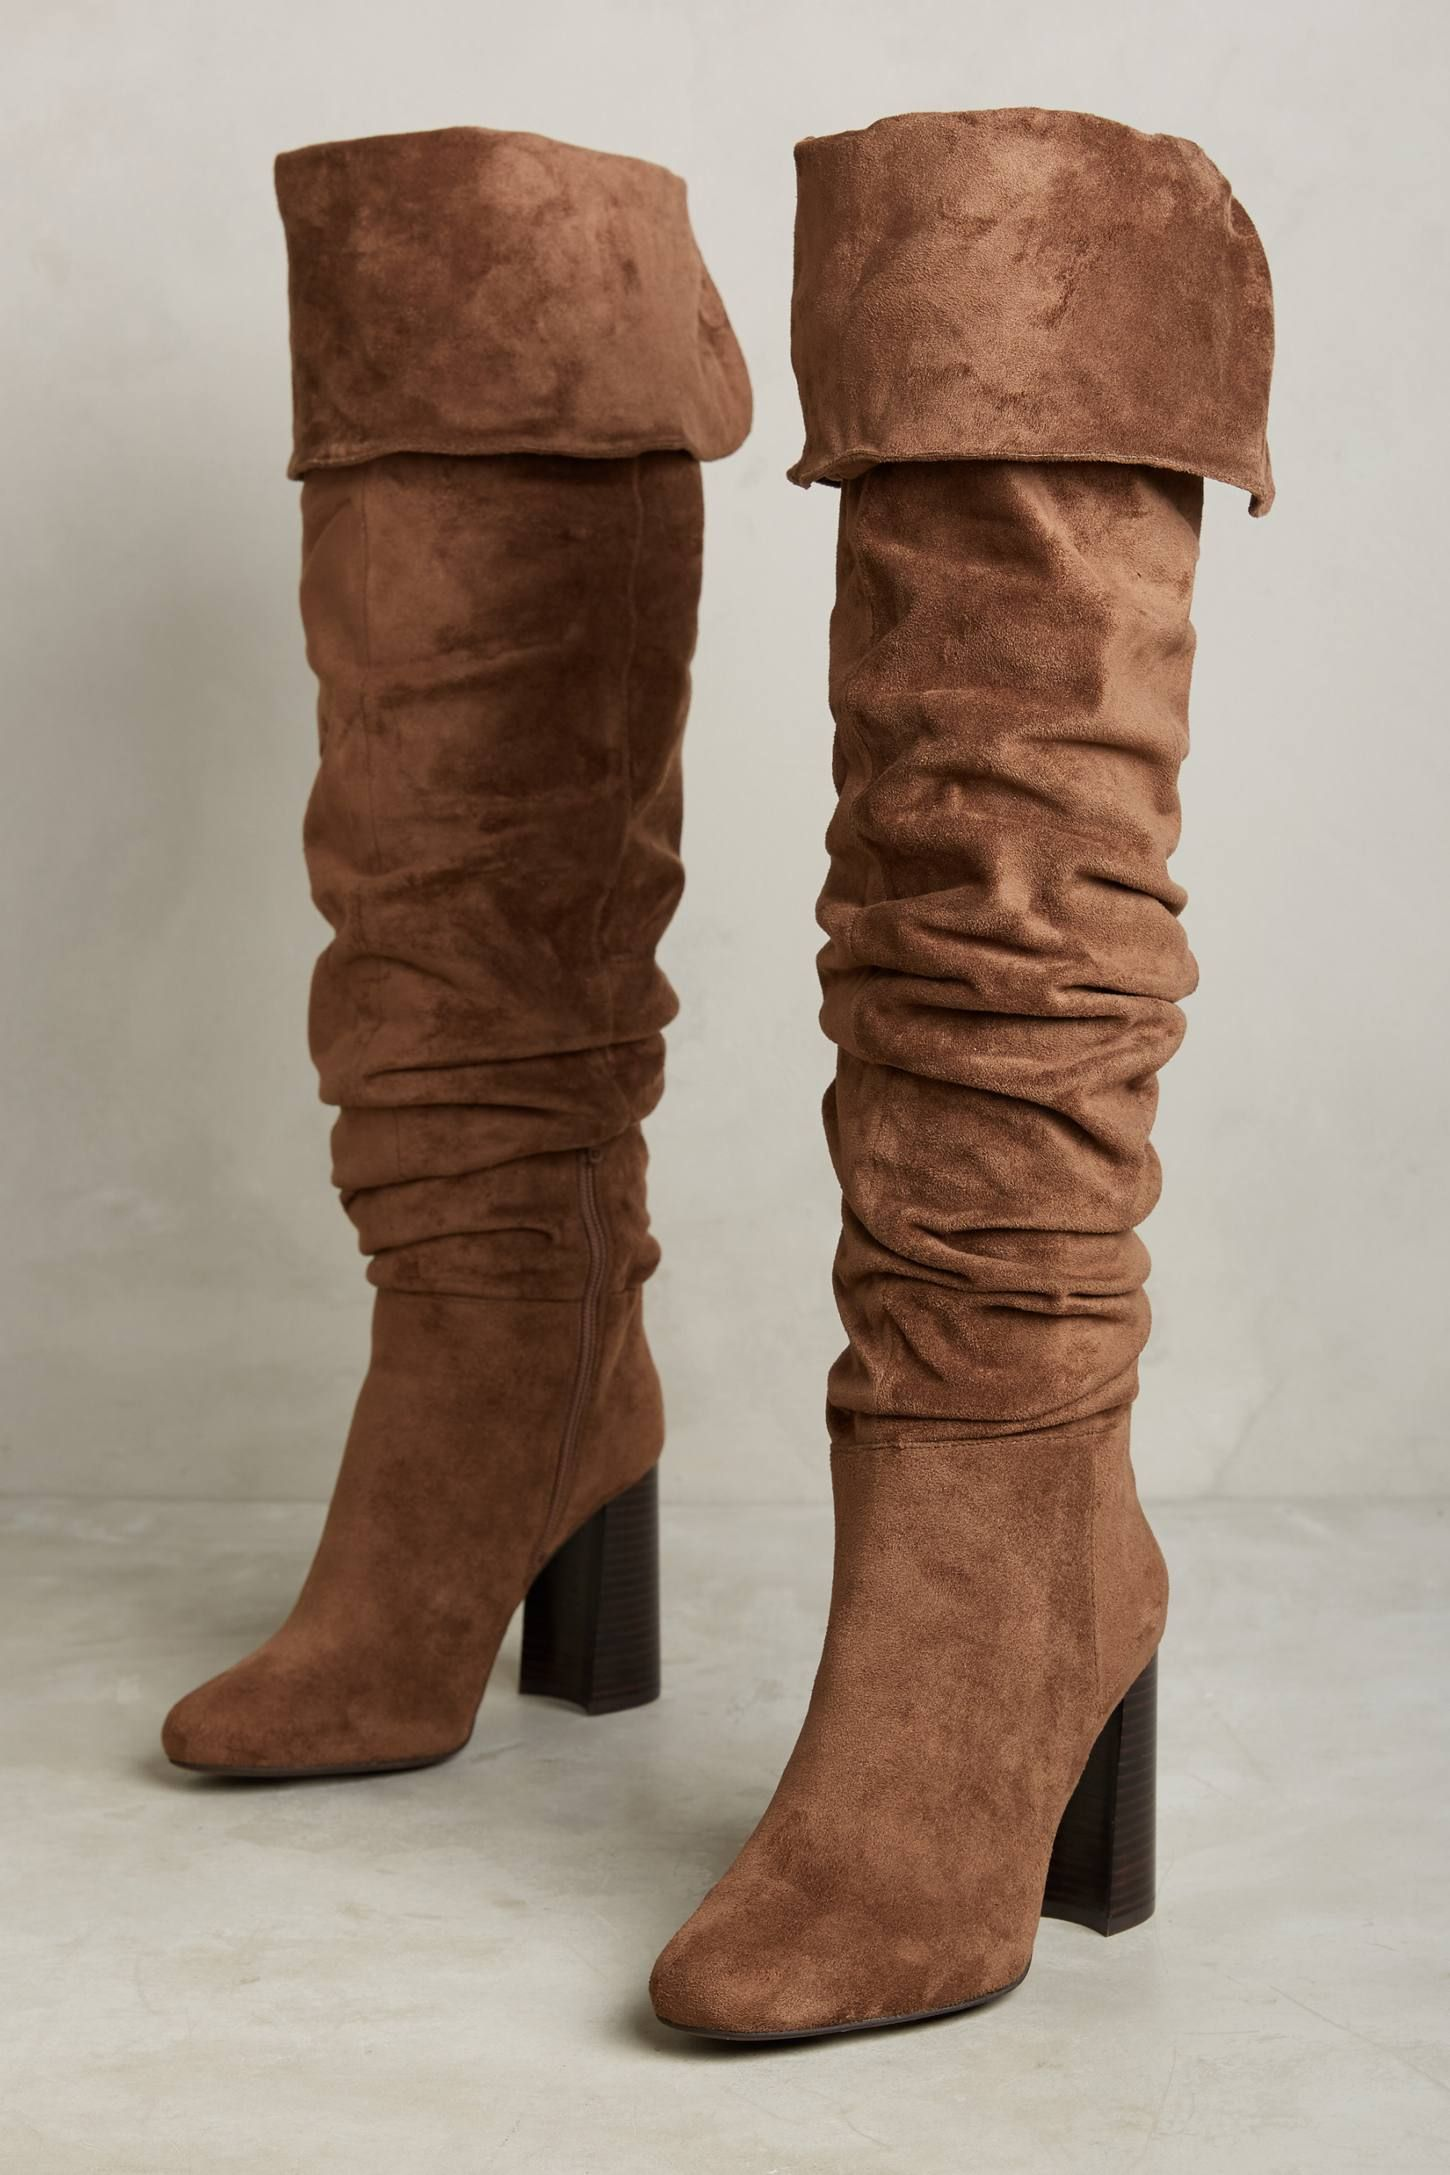 Shop the Jeffrey Campbell Intrigue Boots and more Anthropologie at Anthropologie today. Read customer reviews, discover product details and more.